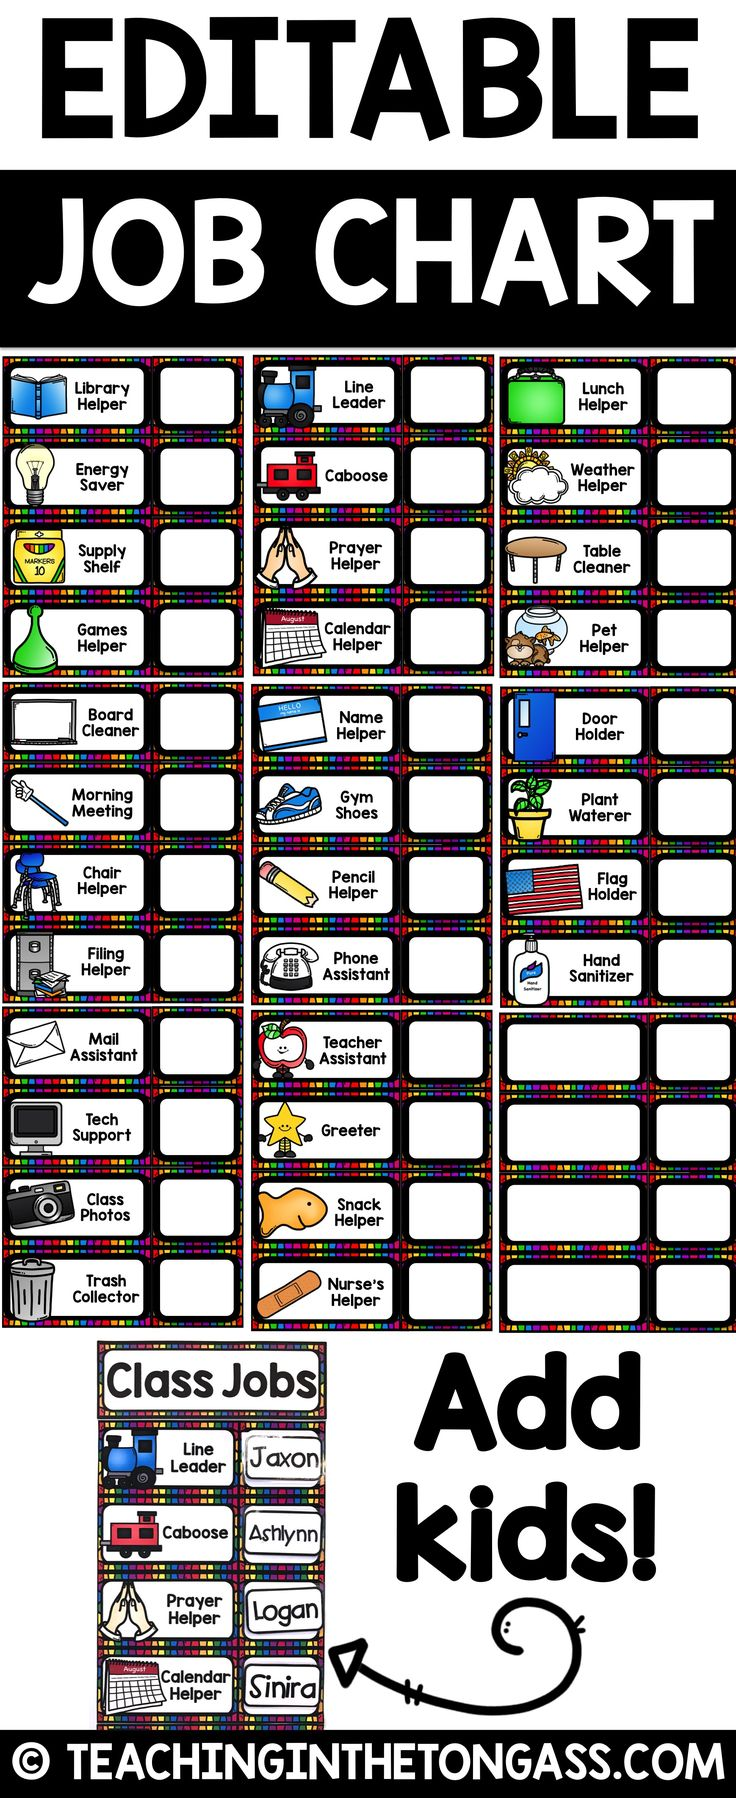 17 Jobs For 17 Year Olds That Will Pay For College: 17 Best Ideas About Job Chart On Pinterest